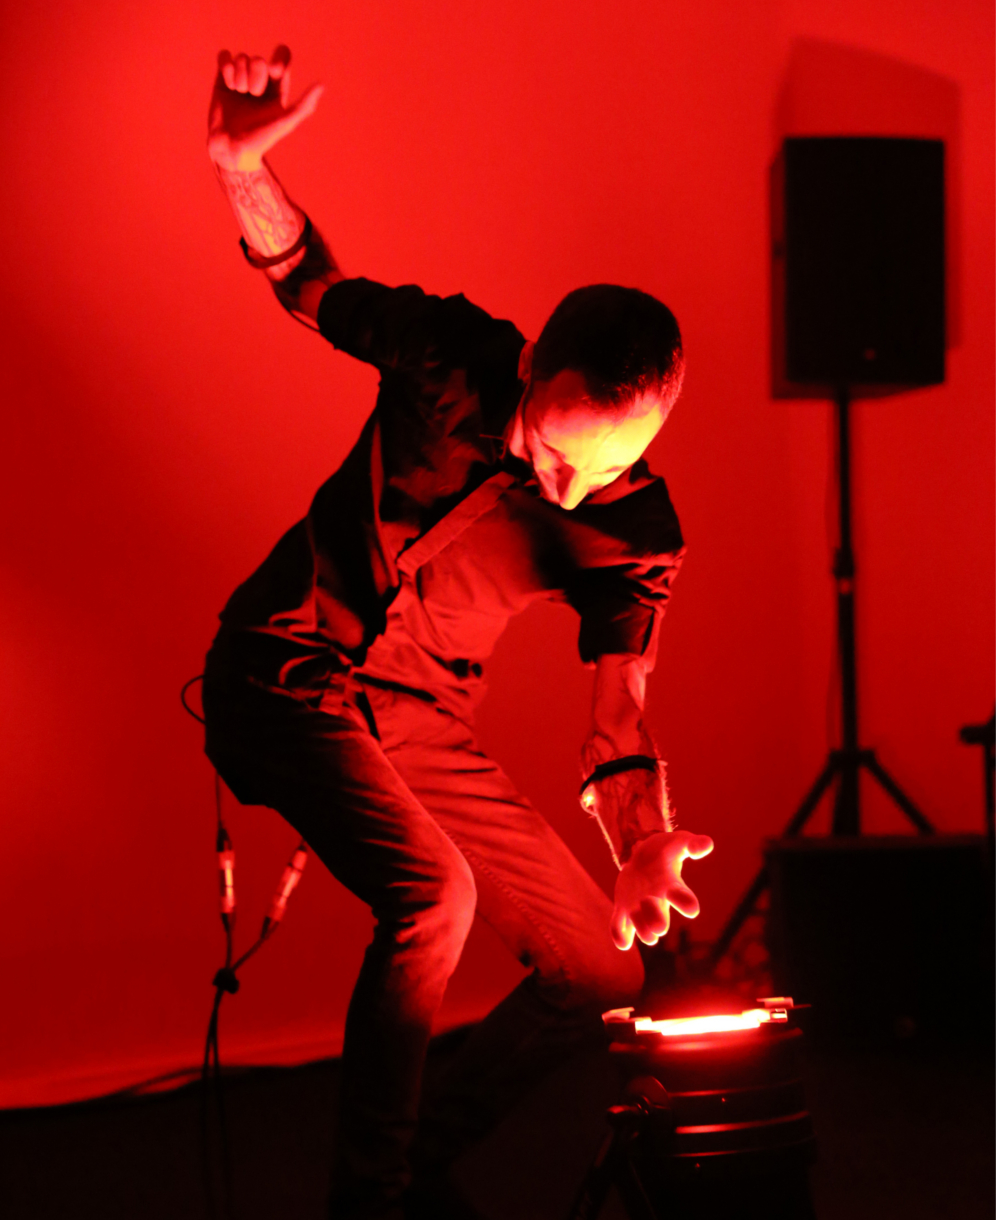 Marco Donnarumma Sound Art Performance and Technology